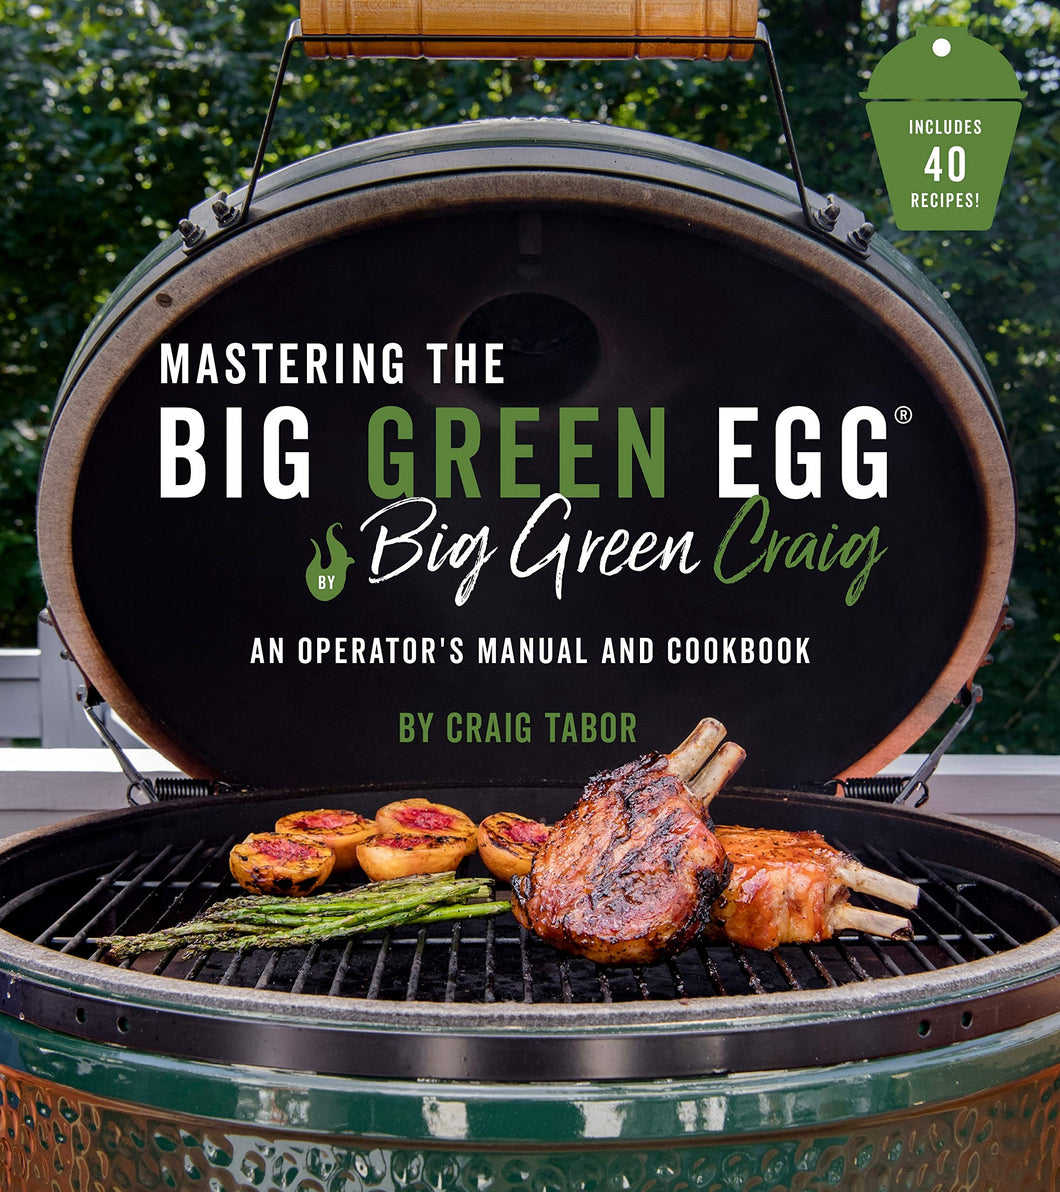 Mastering the Big Green Egg® by Big Green Craig: An Operator's Manual and Cookbook - Tolerant Planet